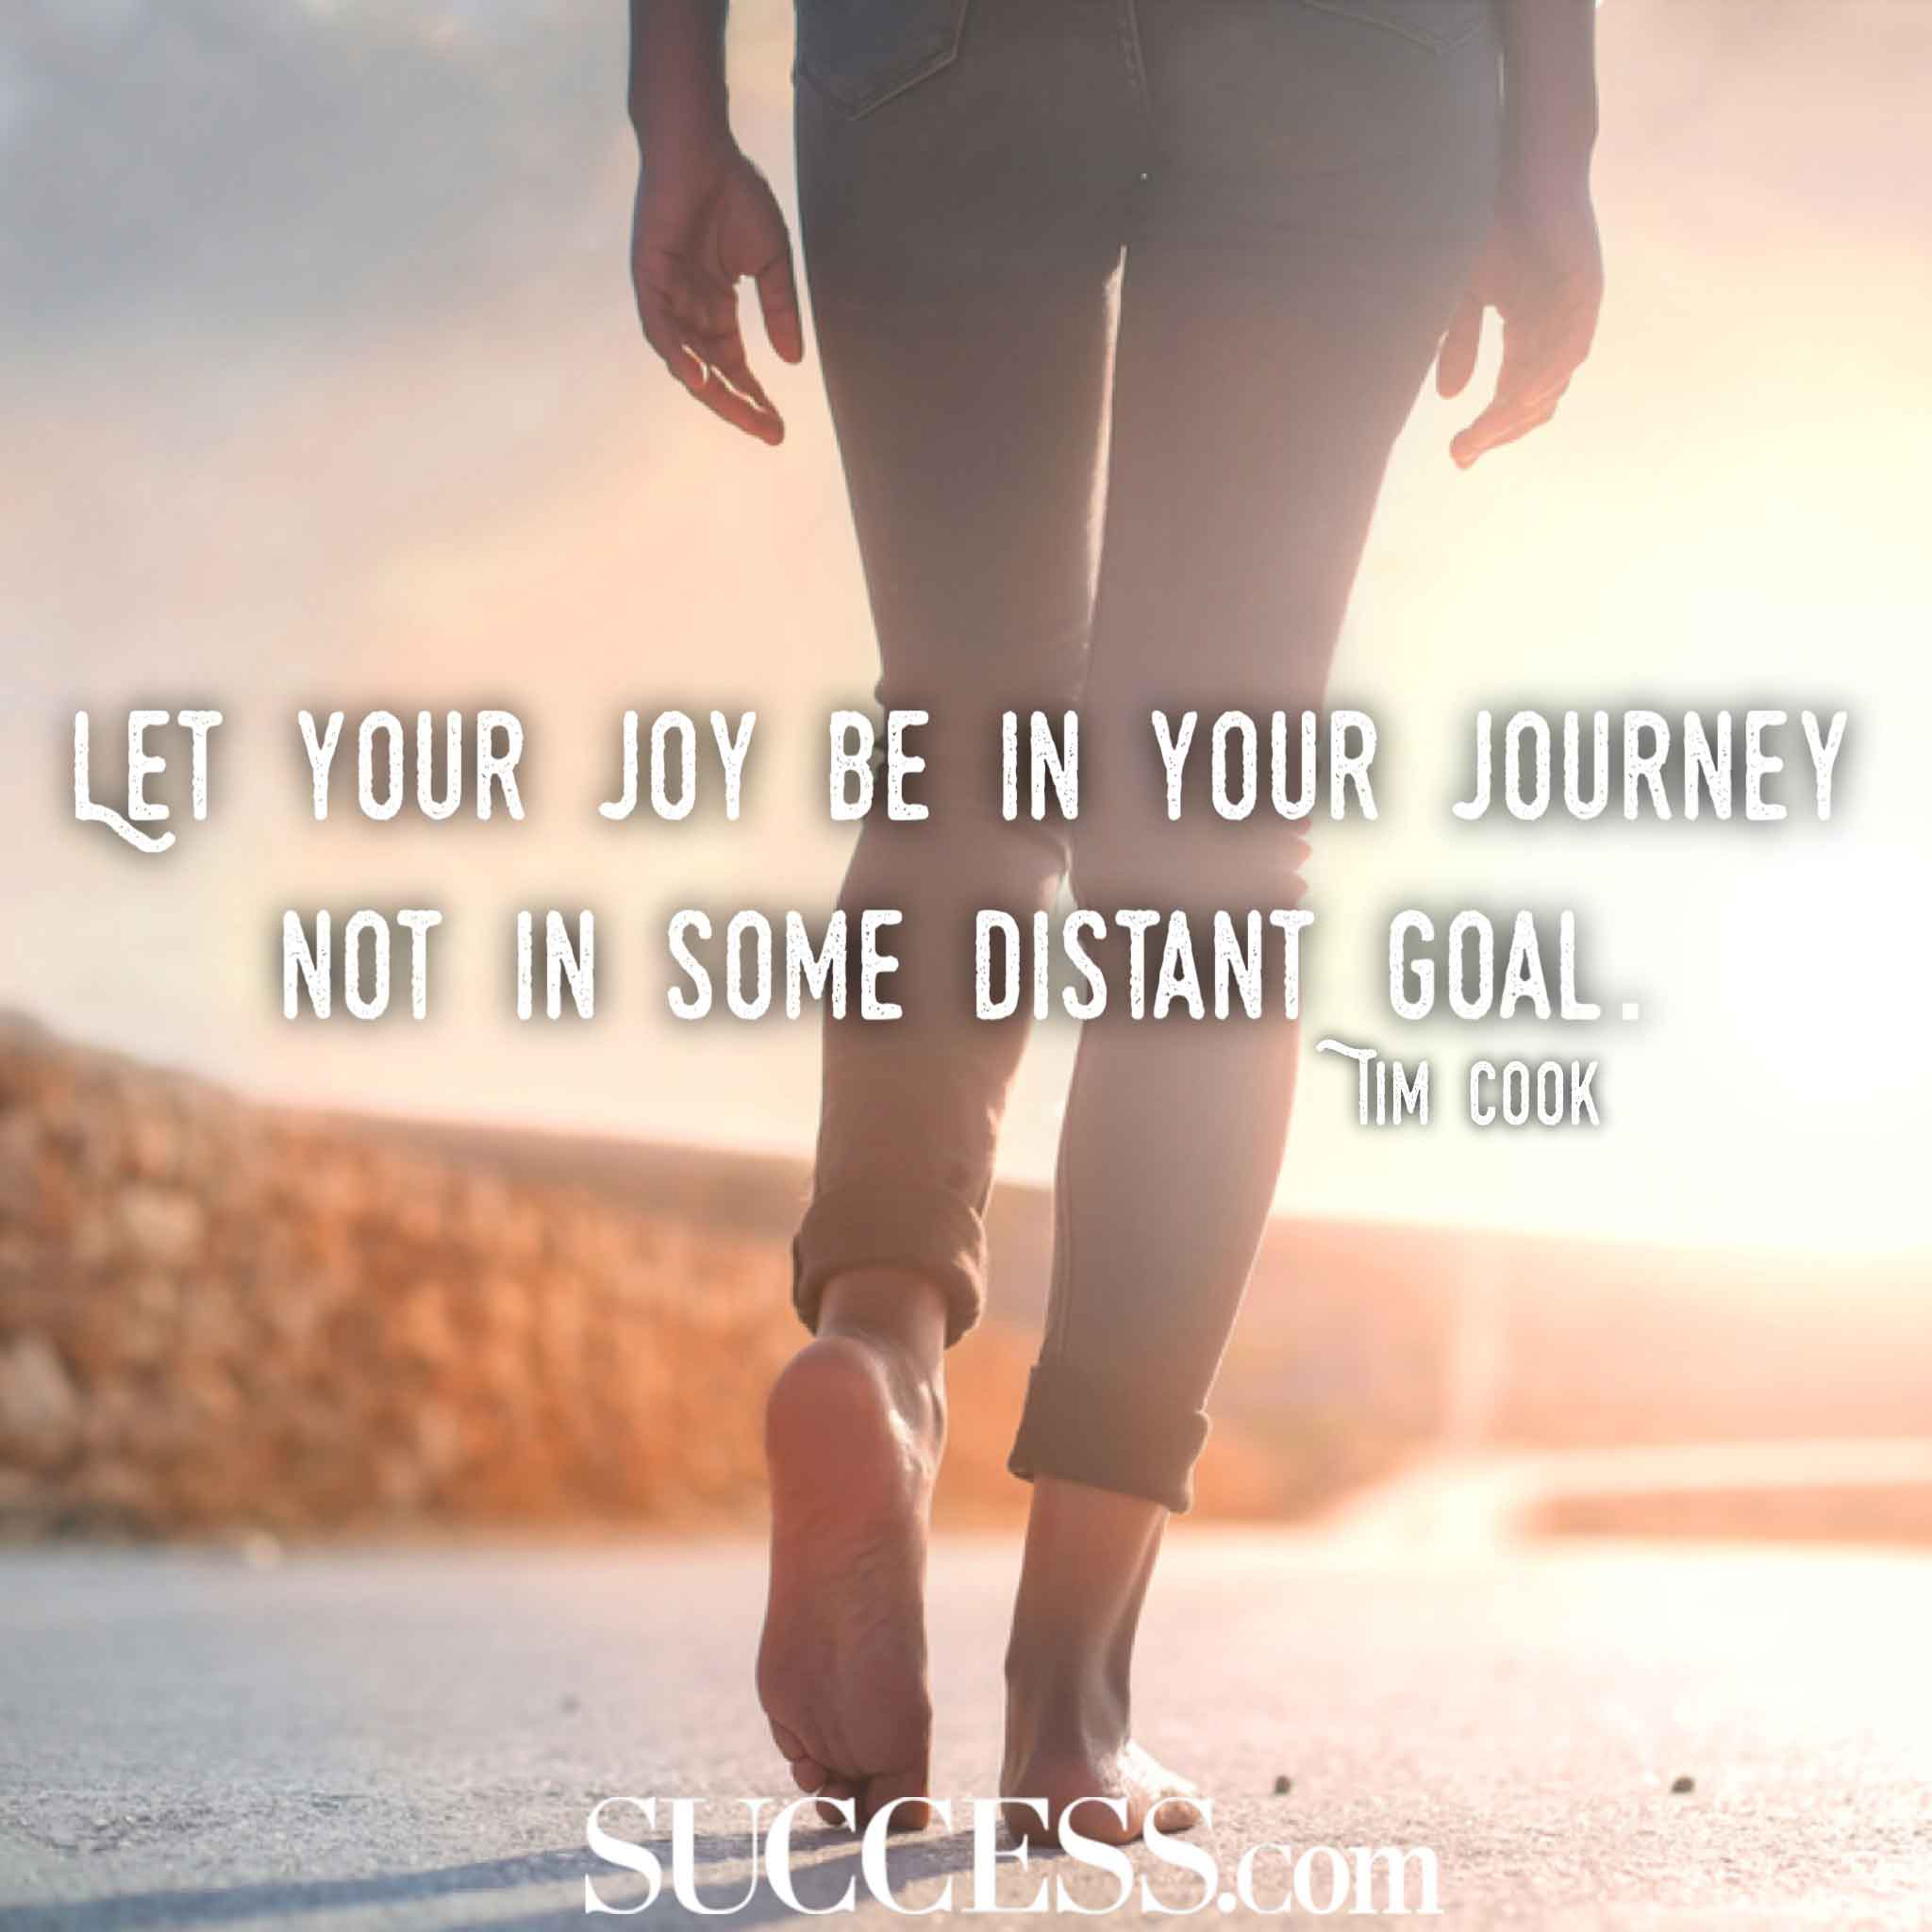 15 Inspiring Quotes to Help You Find Joy